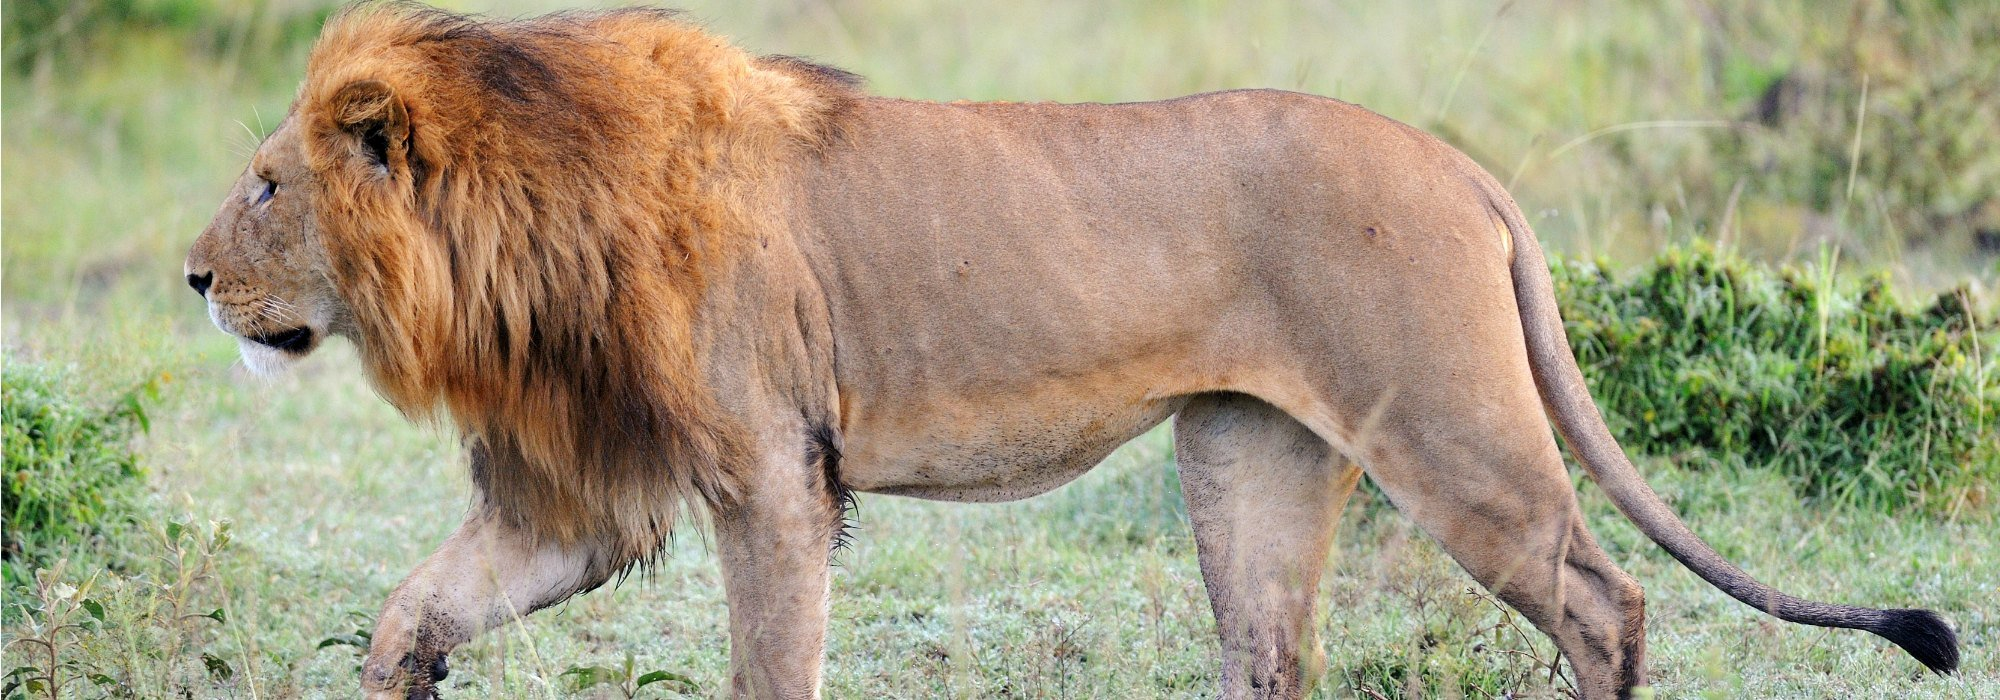 Tanzania Safari, lion in the Serengeti